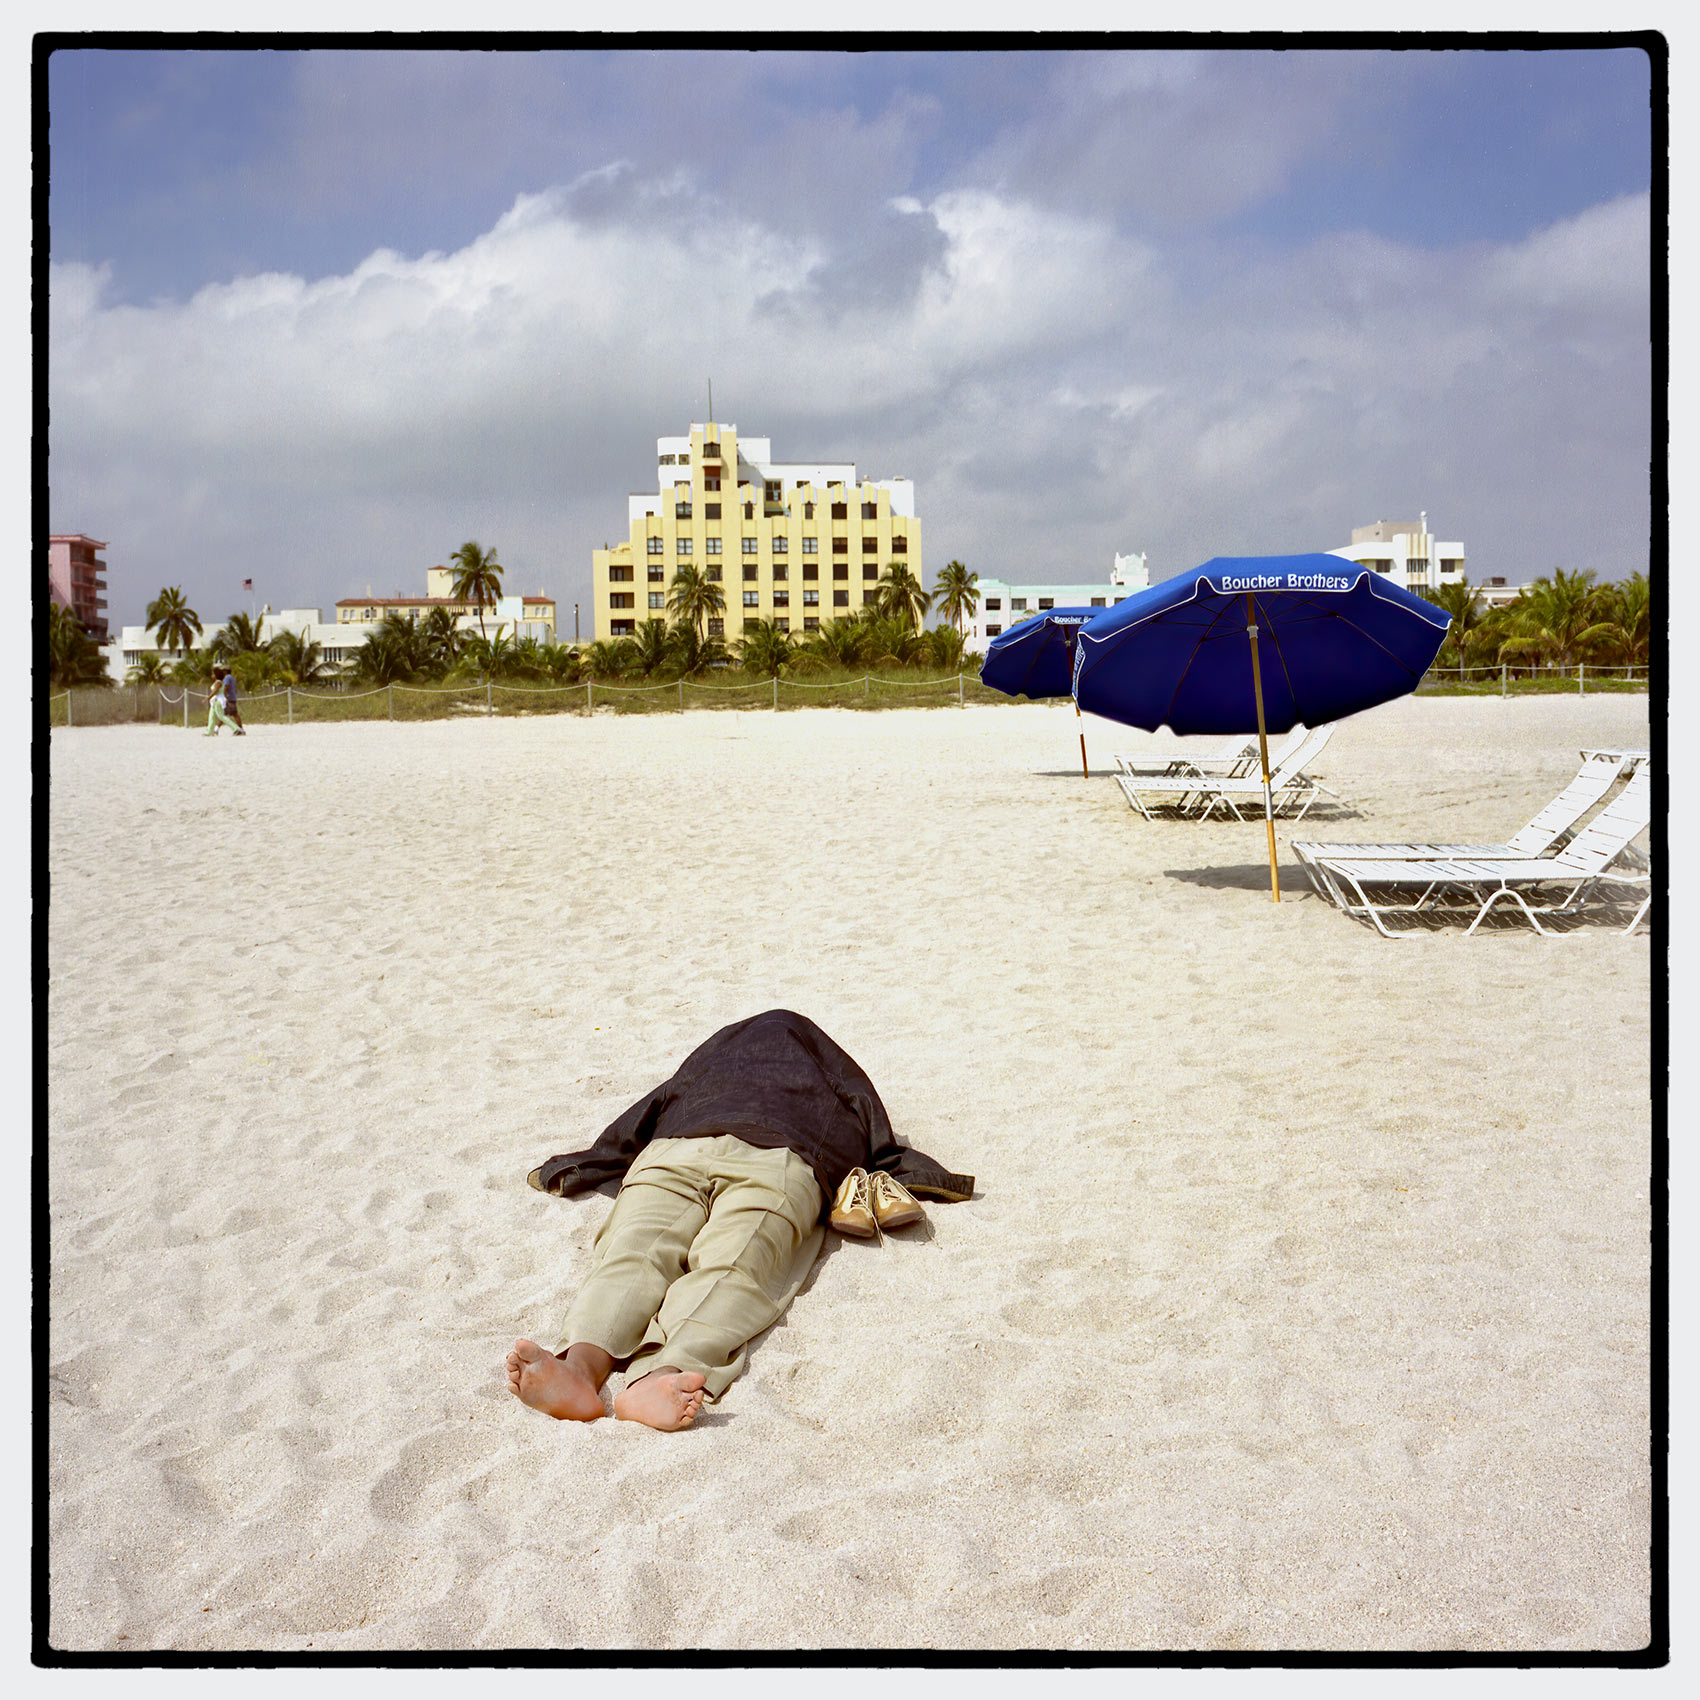 a-man-looks-dead-as-he-lays-sleeping-on-miami-beach-covered-in-a-jacket